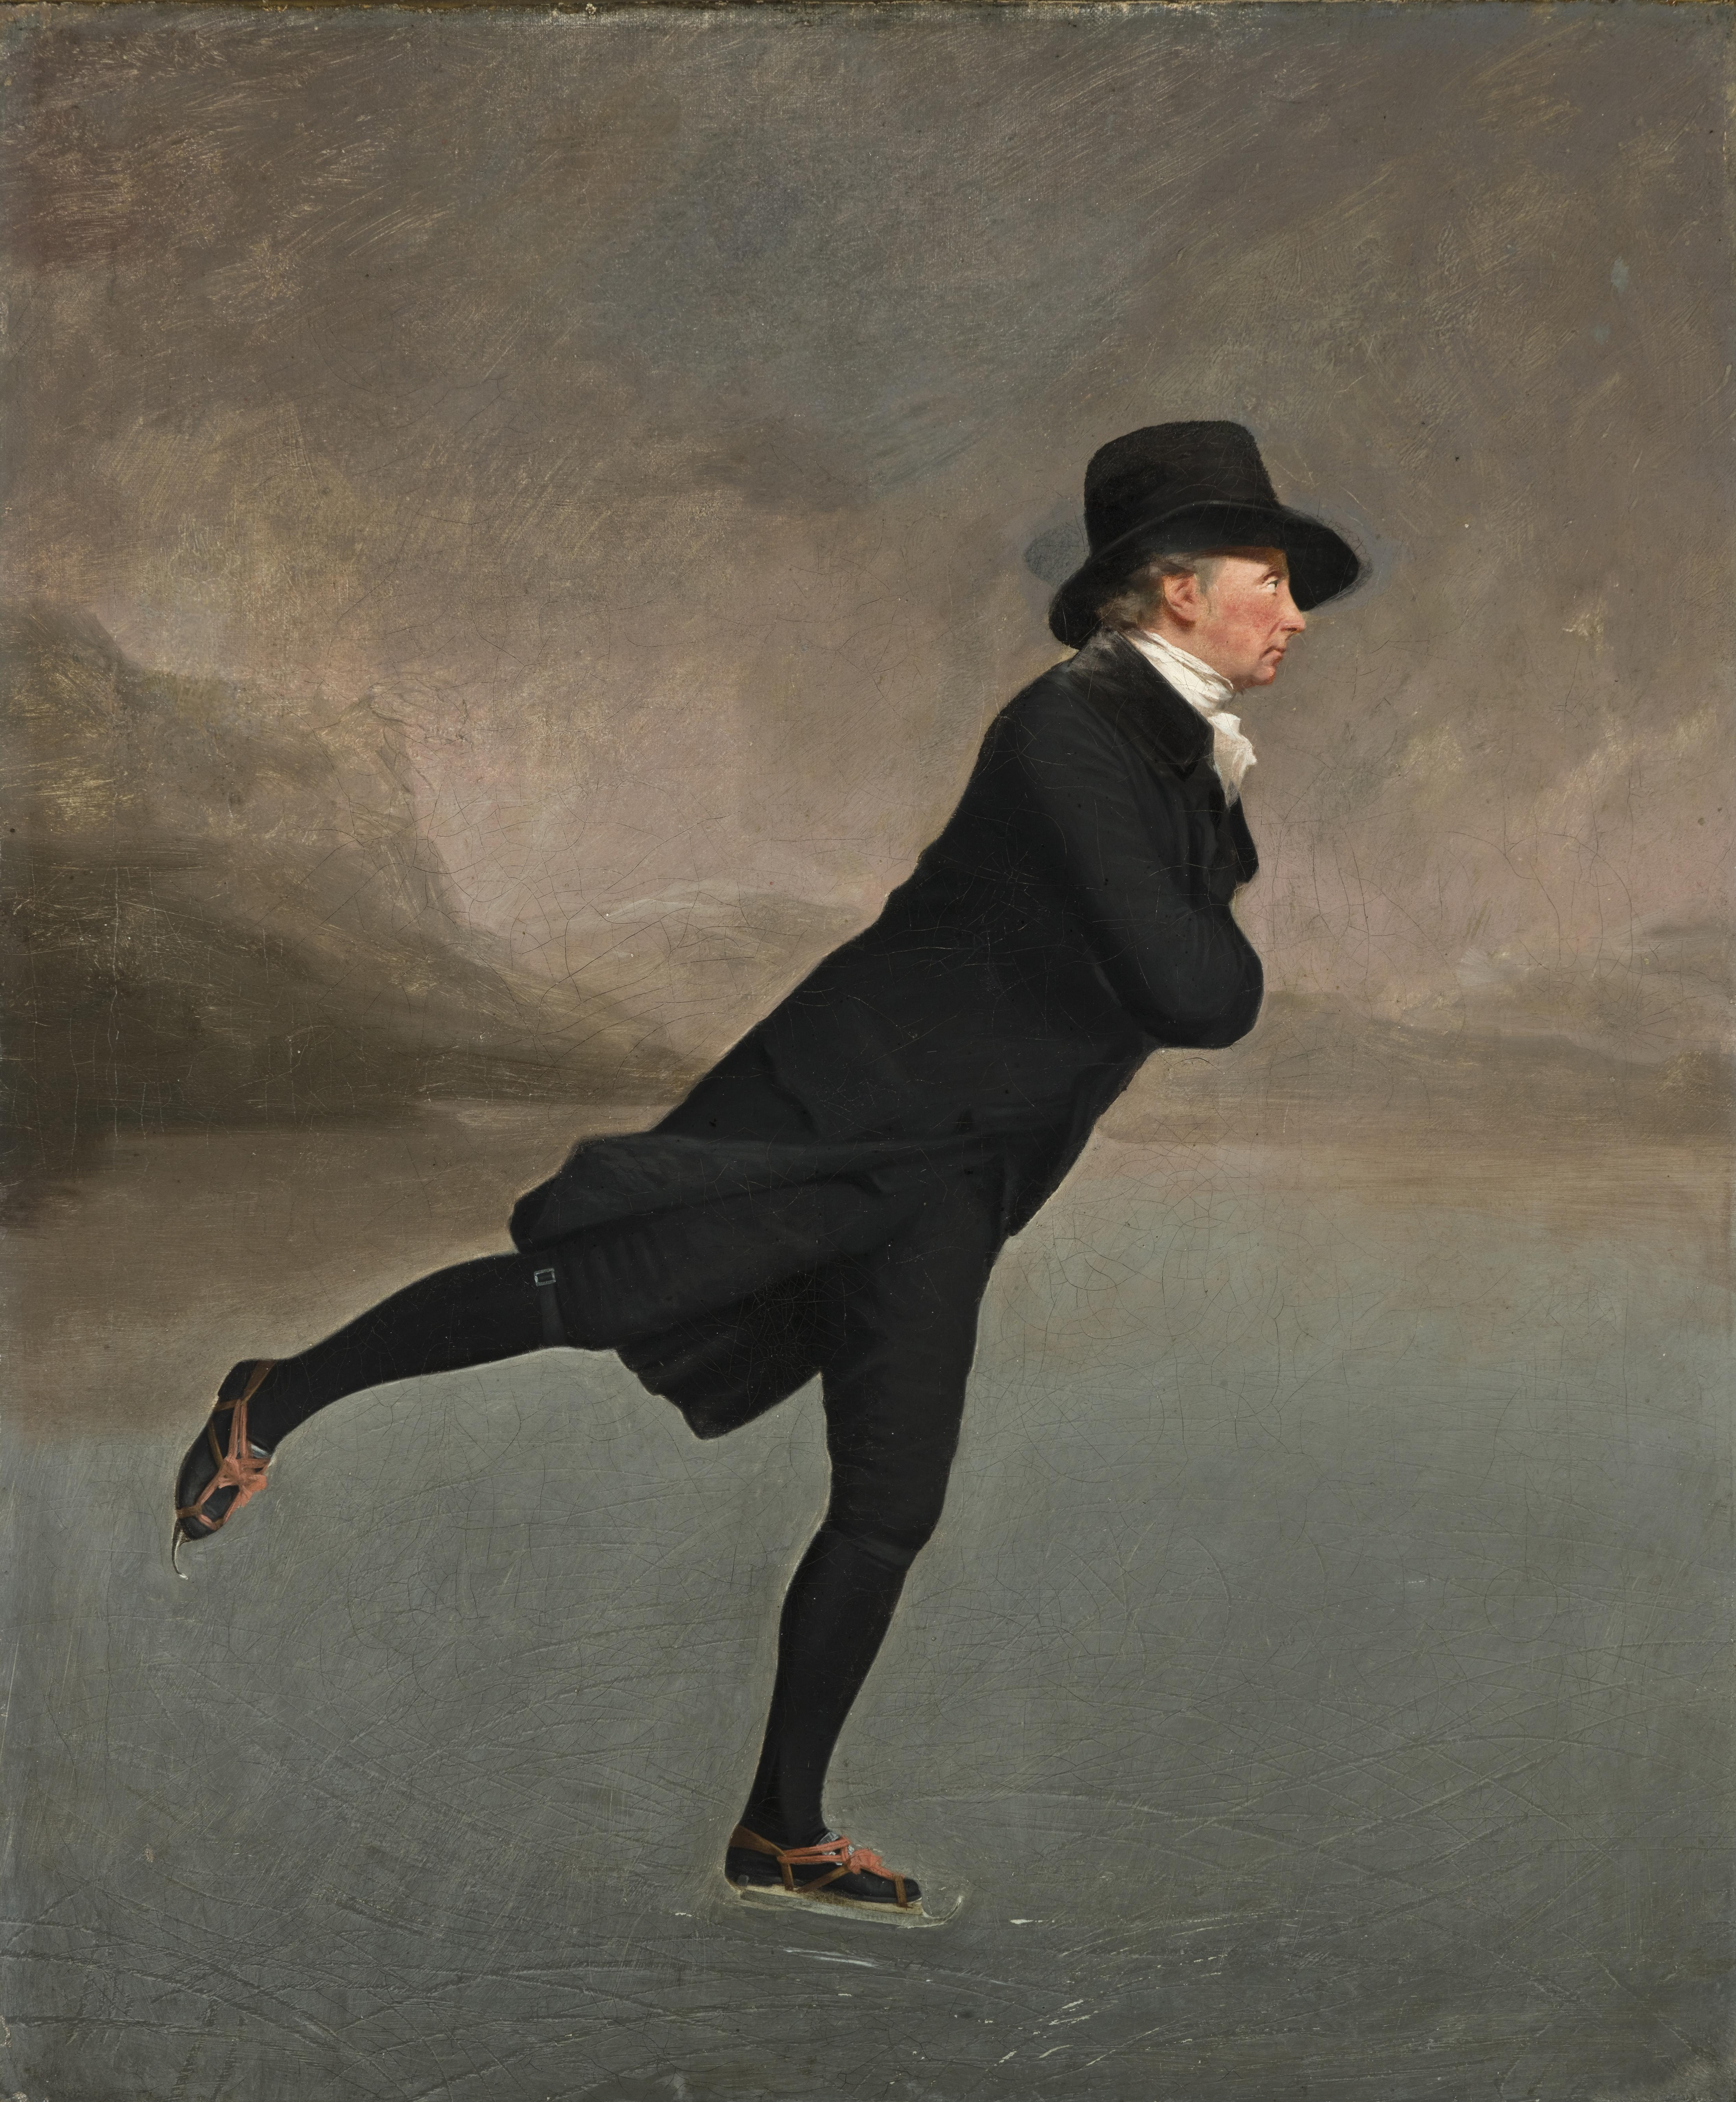 ice skating the skating minister by henry raeburn depicts a member of the edinburgh skating club in the 1790s